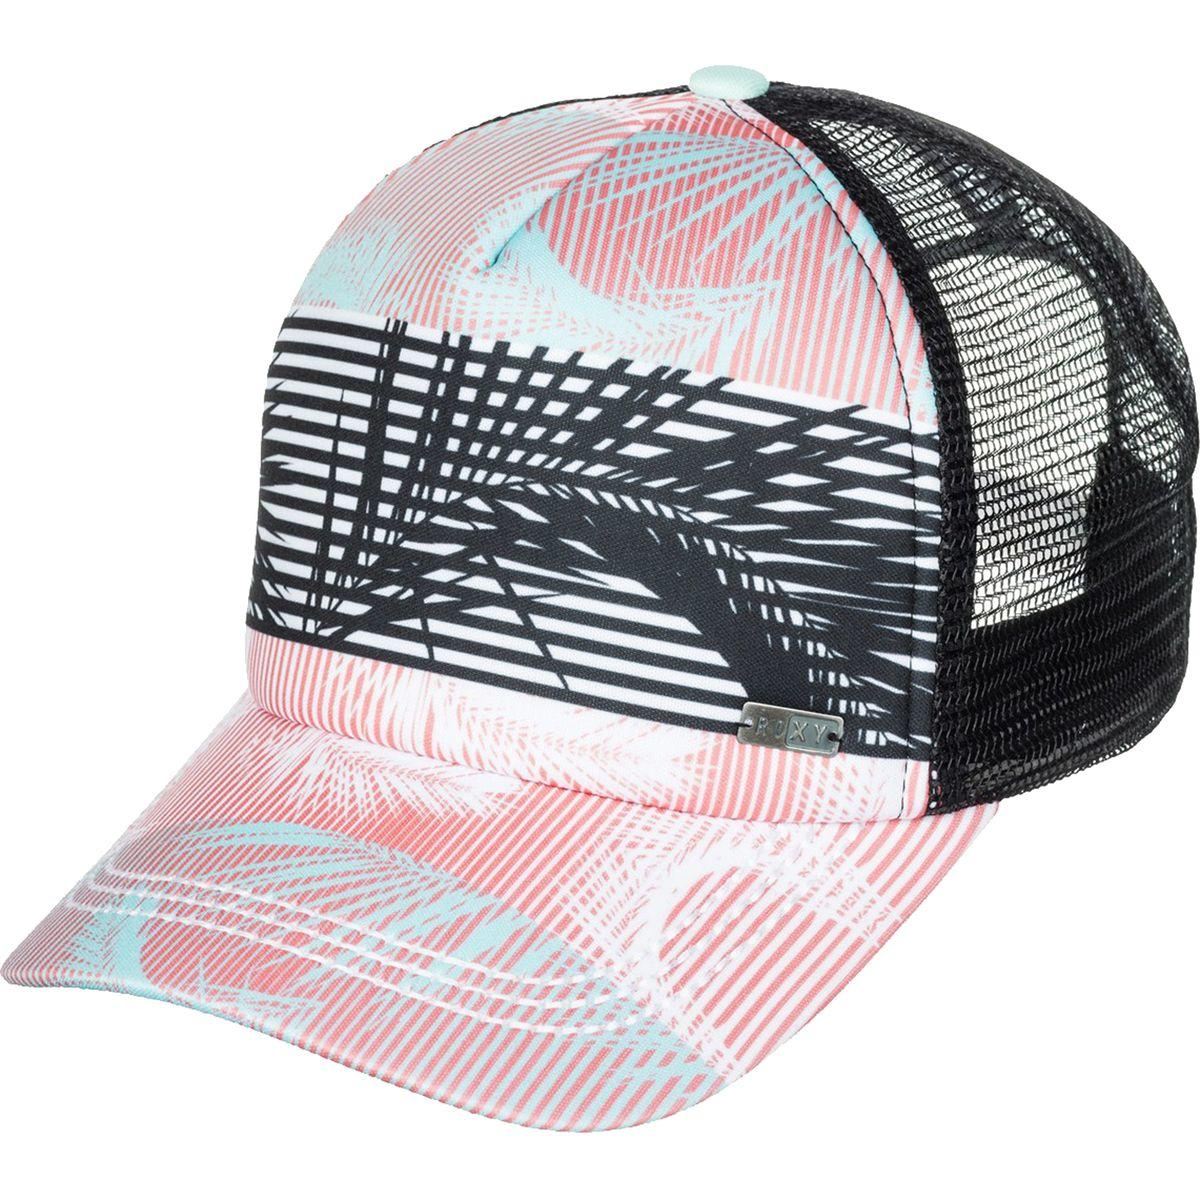 7c80e25ff4e Roxy Roach Trucker Hat Women S From Backcountry